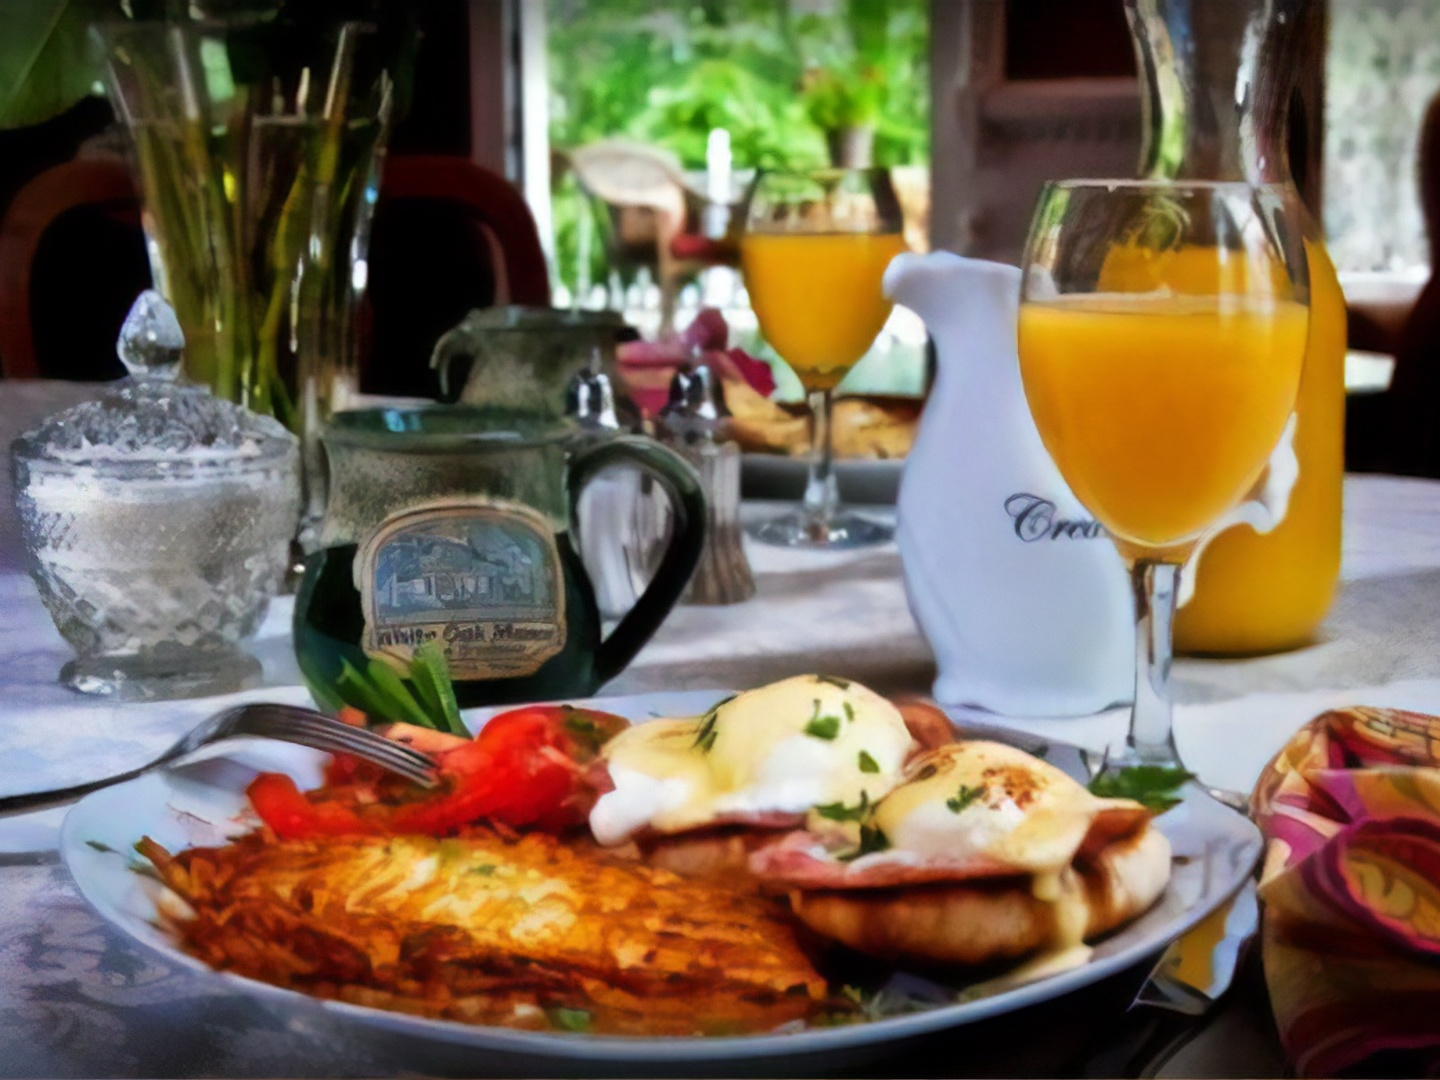 A plate of food and a glass of wine at White Oak Manor Bed and Breakfast.